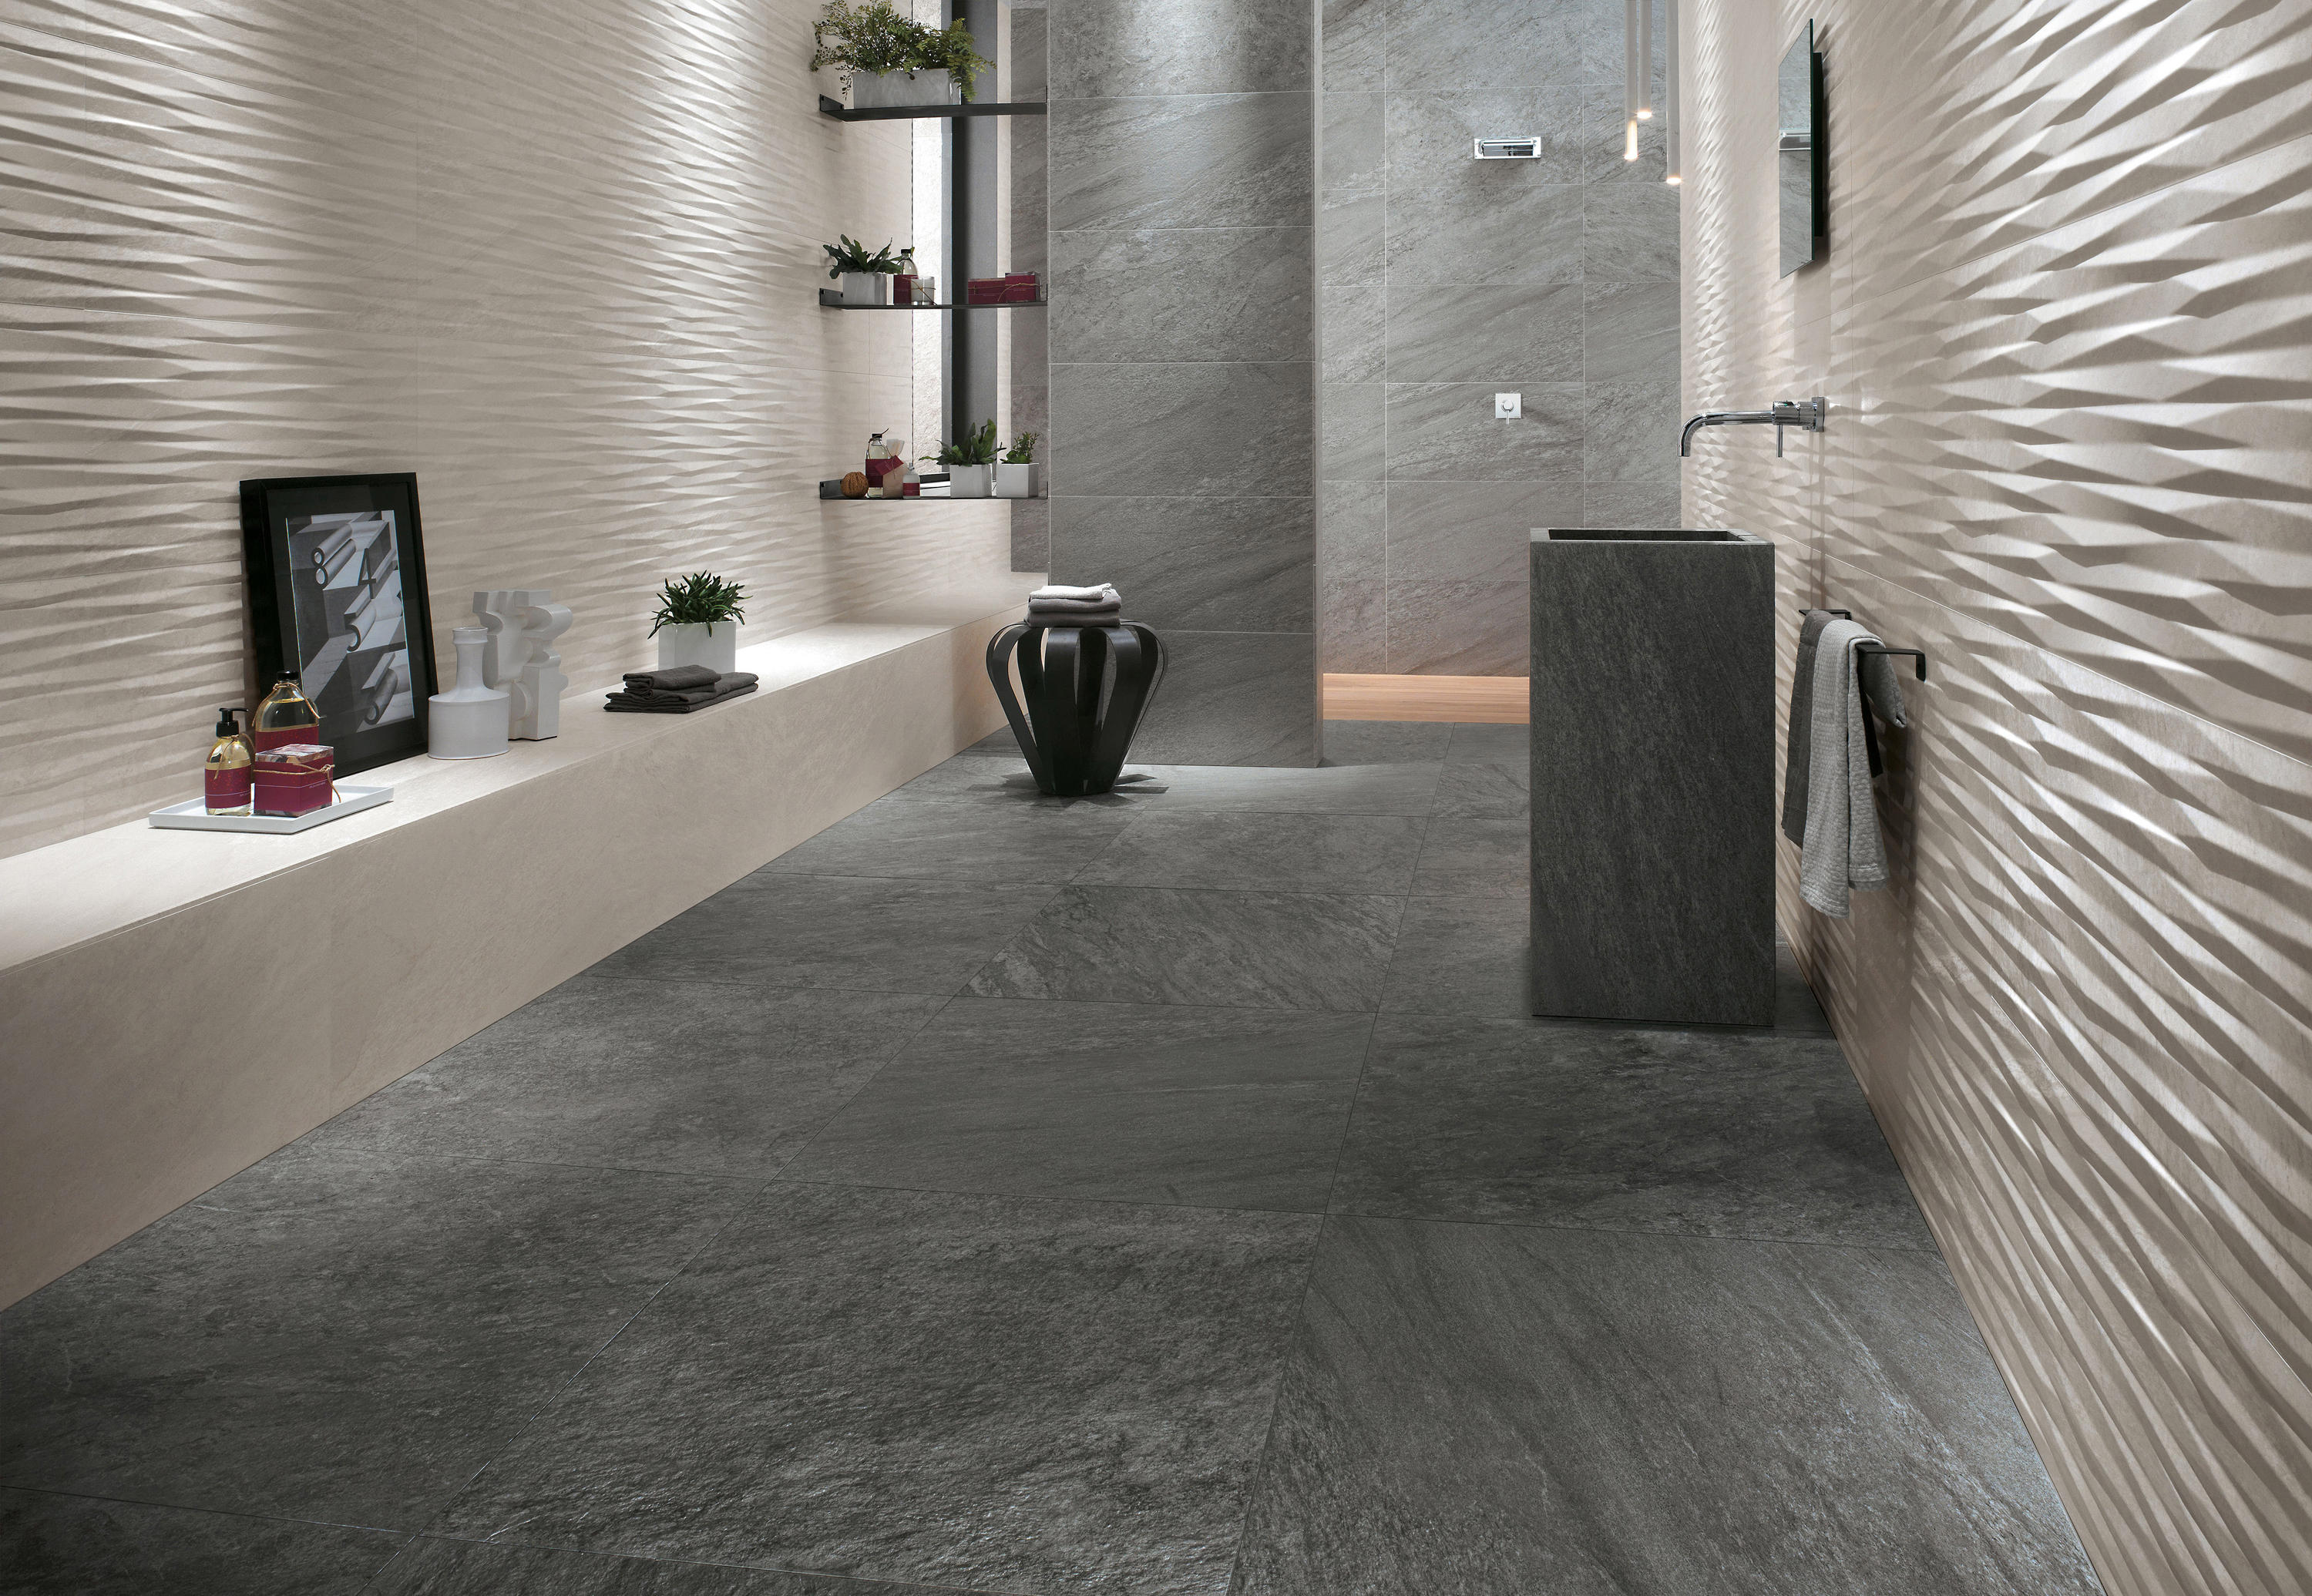 BRAVE 3D WALL BLADE Ceramic Tiles From Atlas Concorde